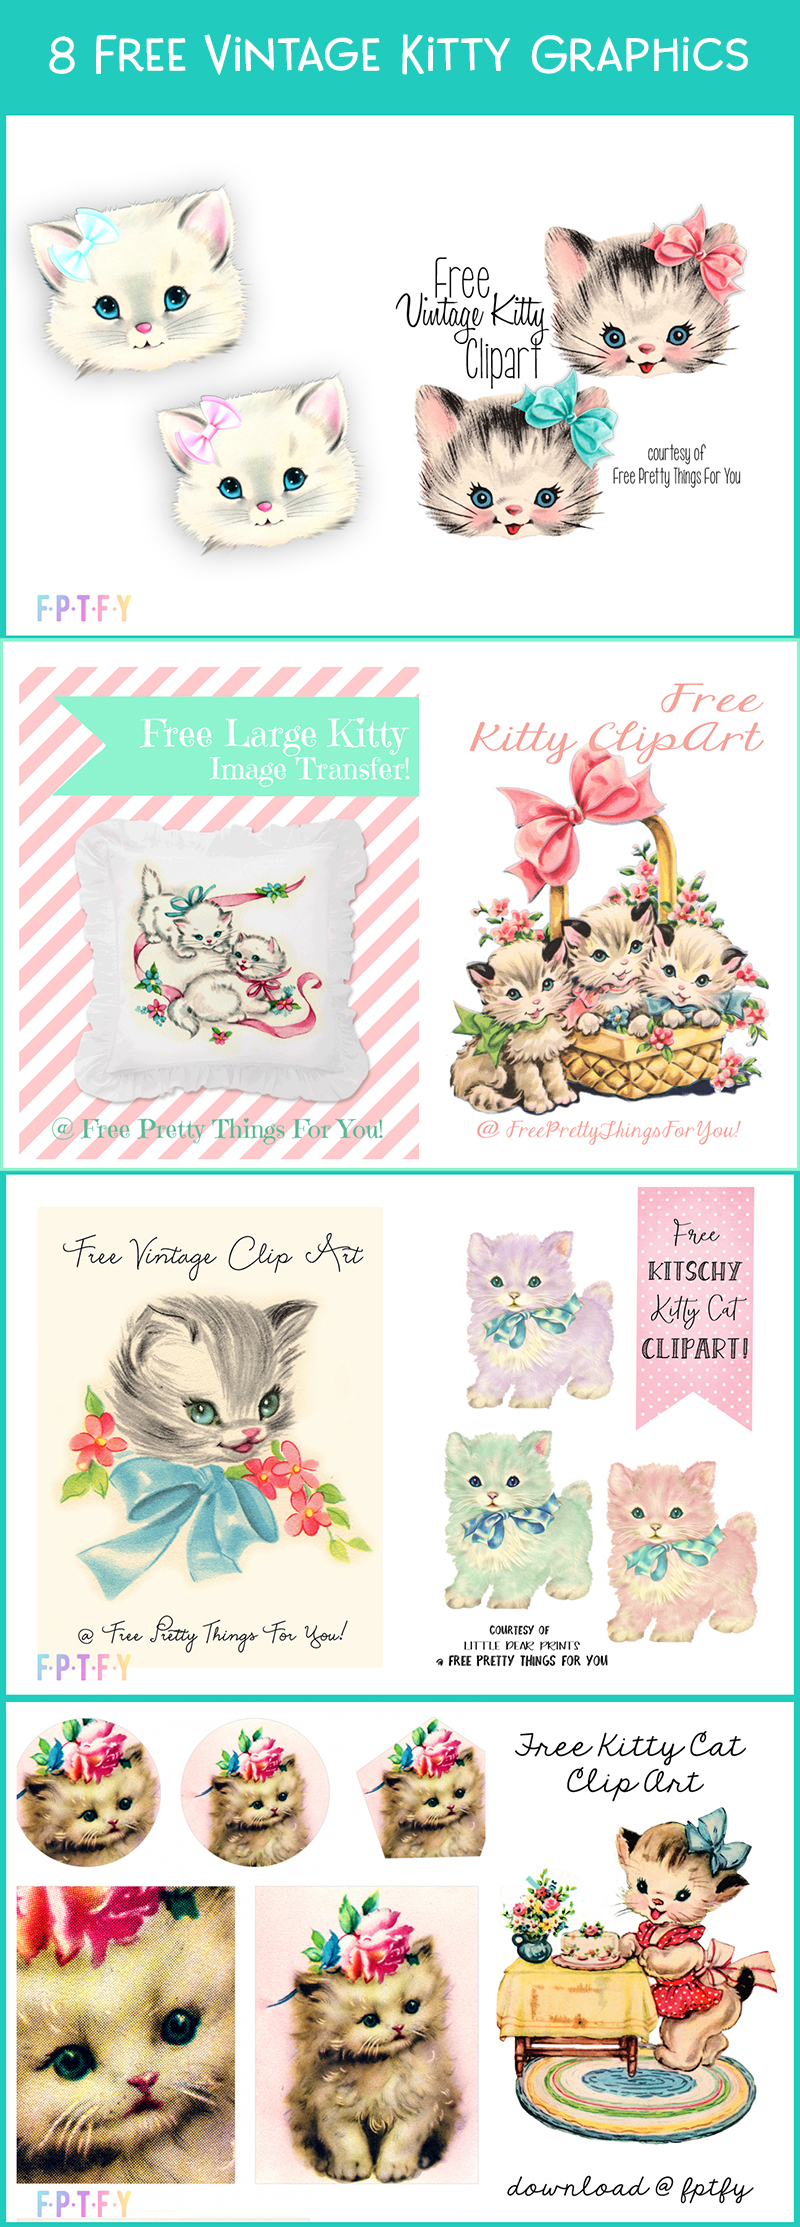 8 free vintage kitty graphics